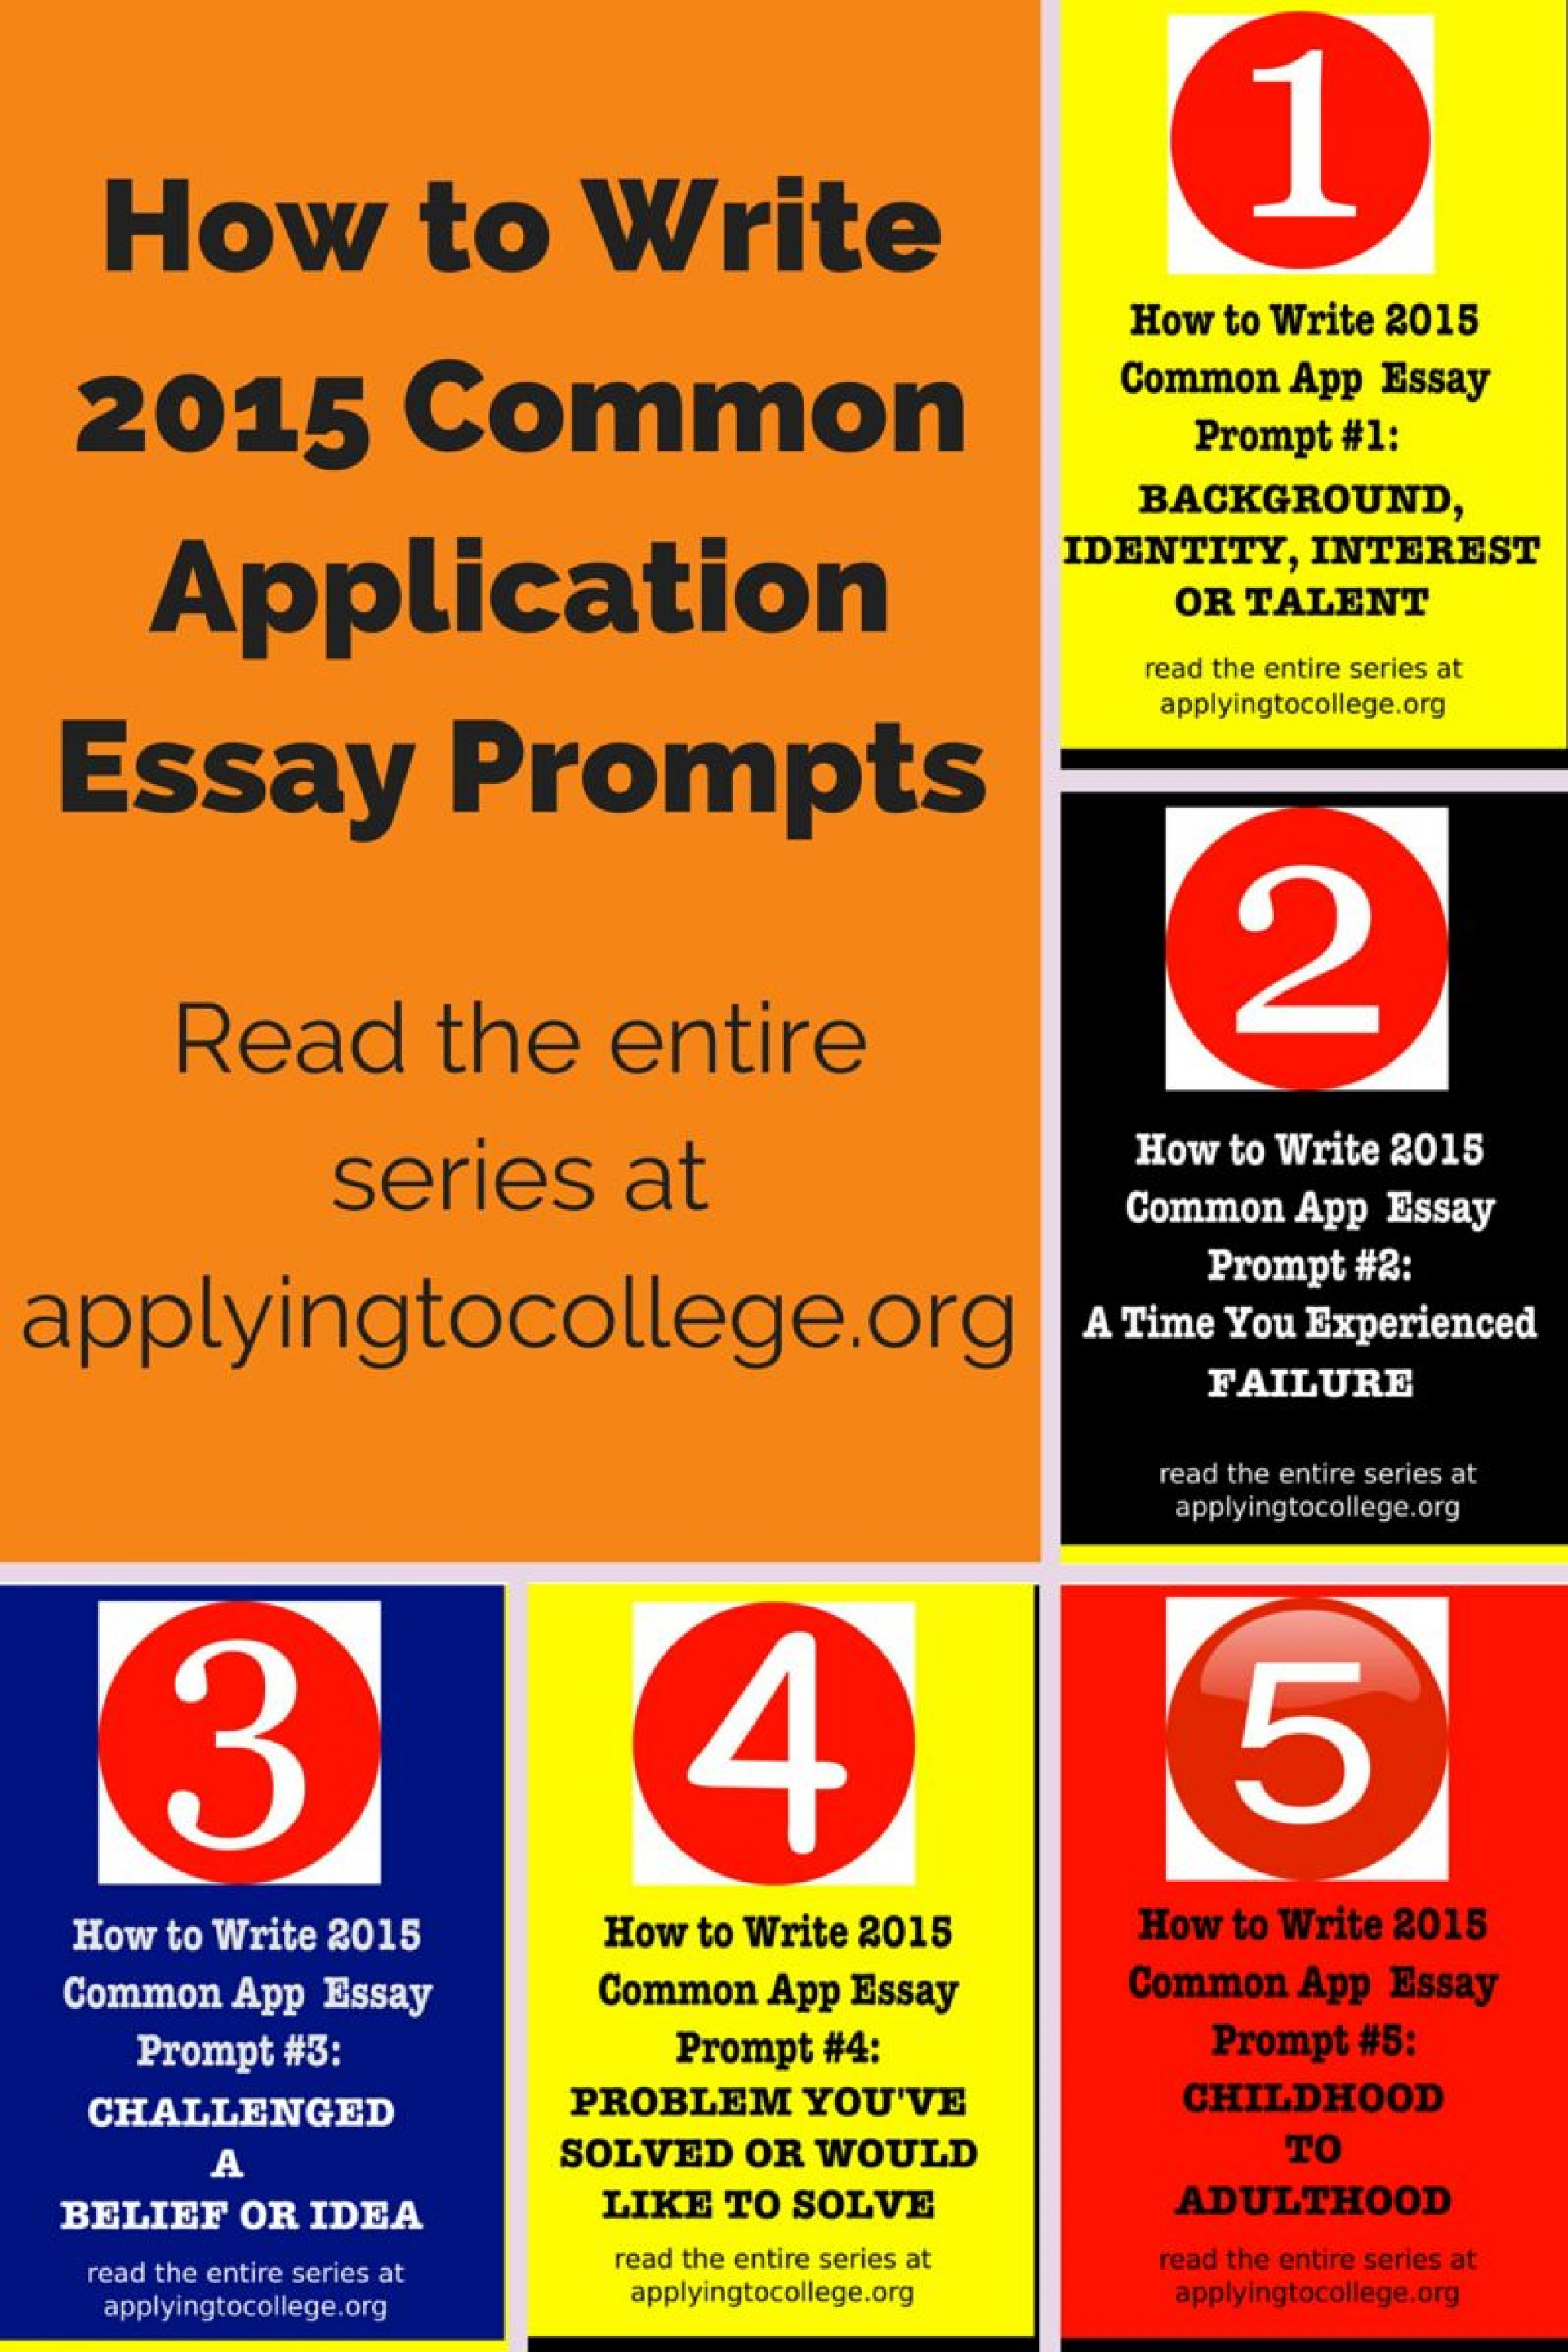 009 Prompts For College Essays Essay Unusual 2015 1920